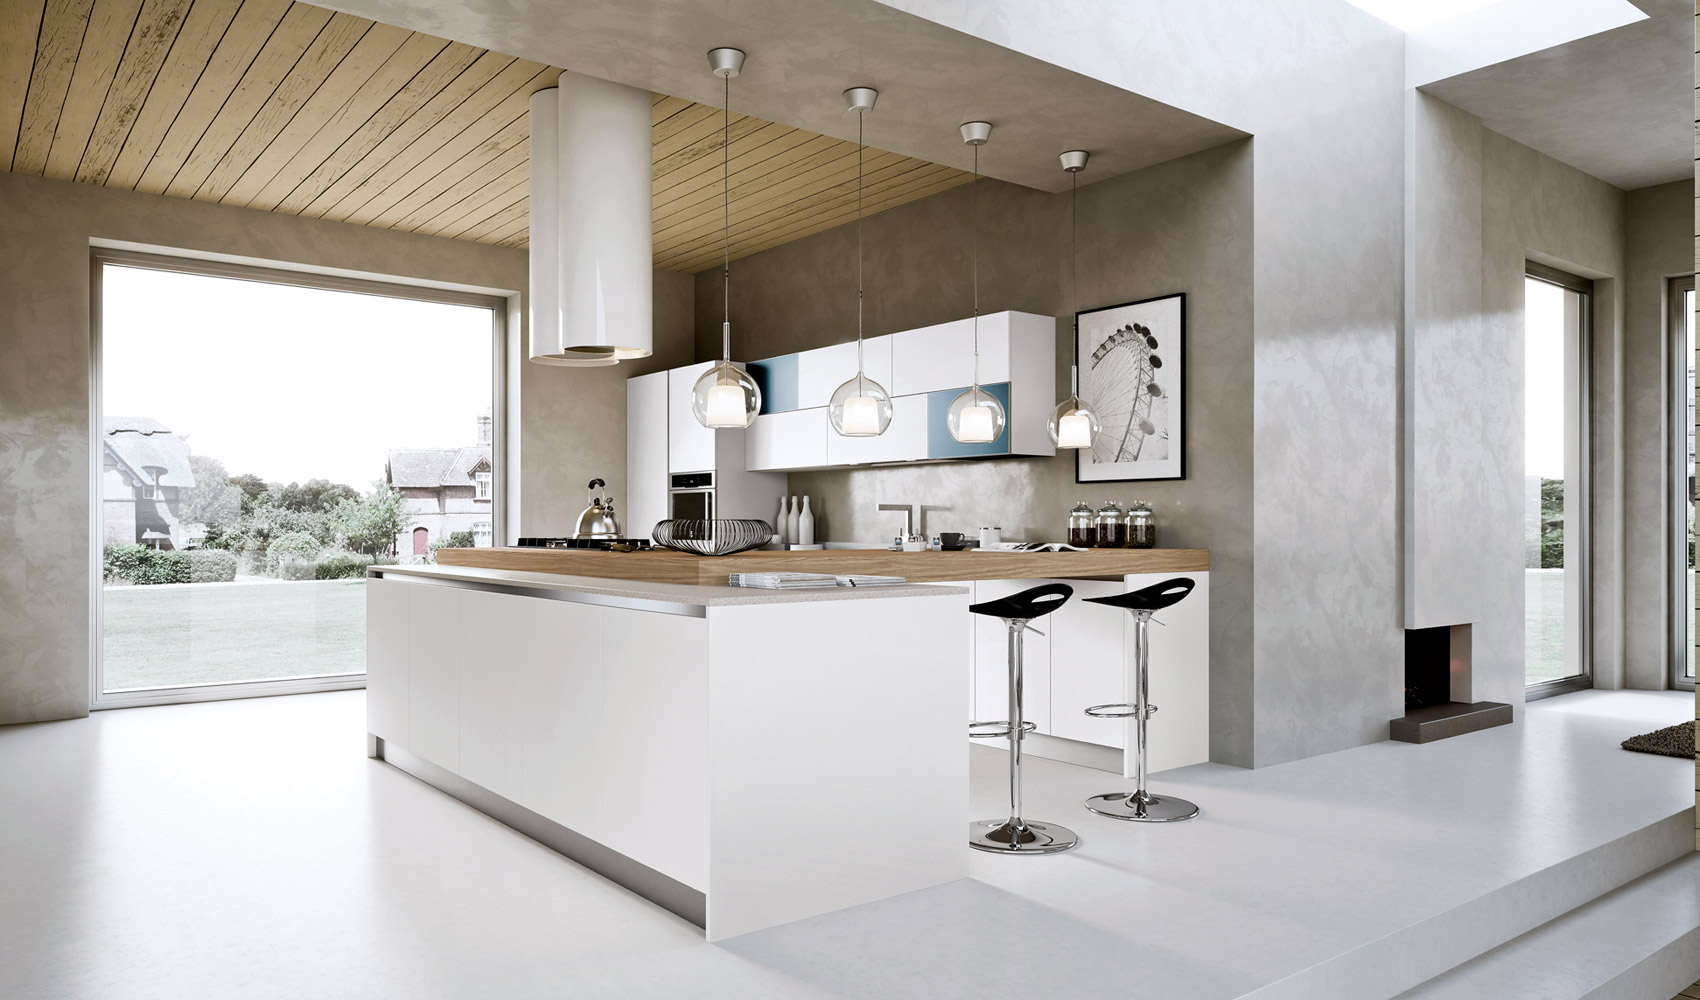 White kitchen interior design ideas for Interior design ideas for kitchen